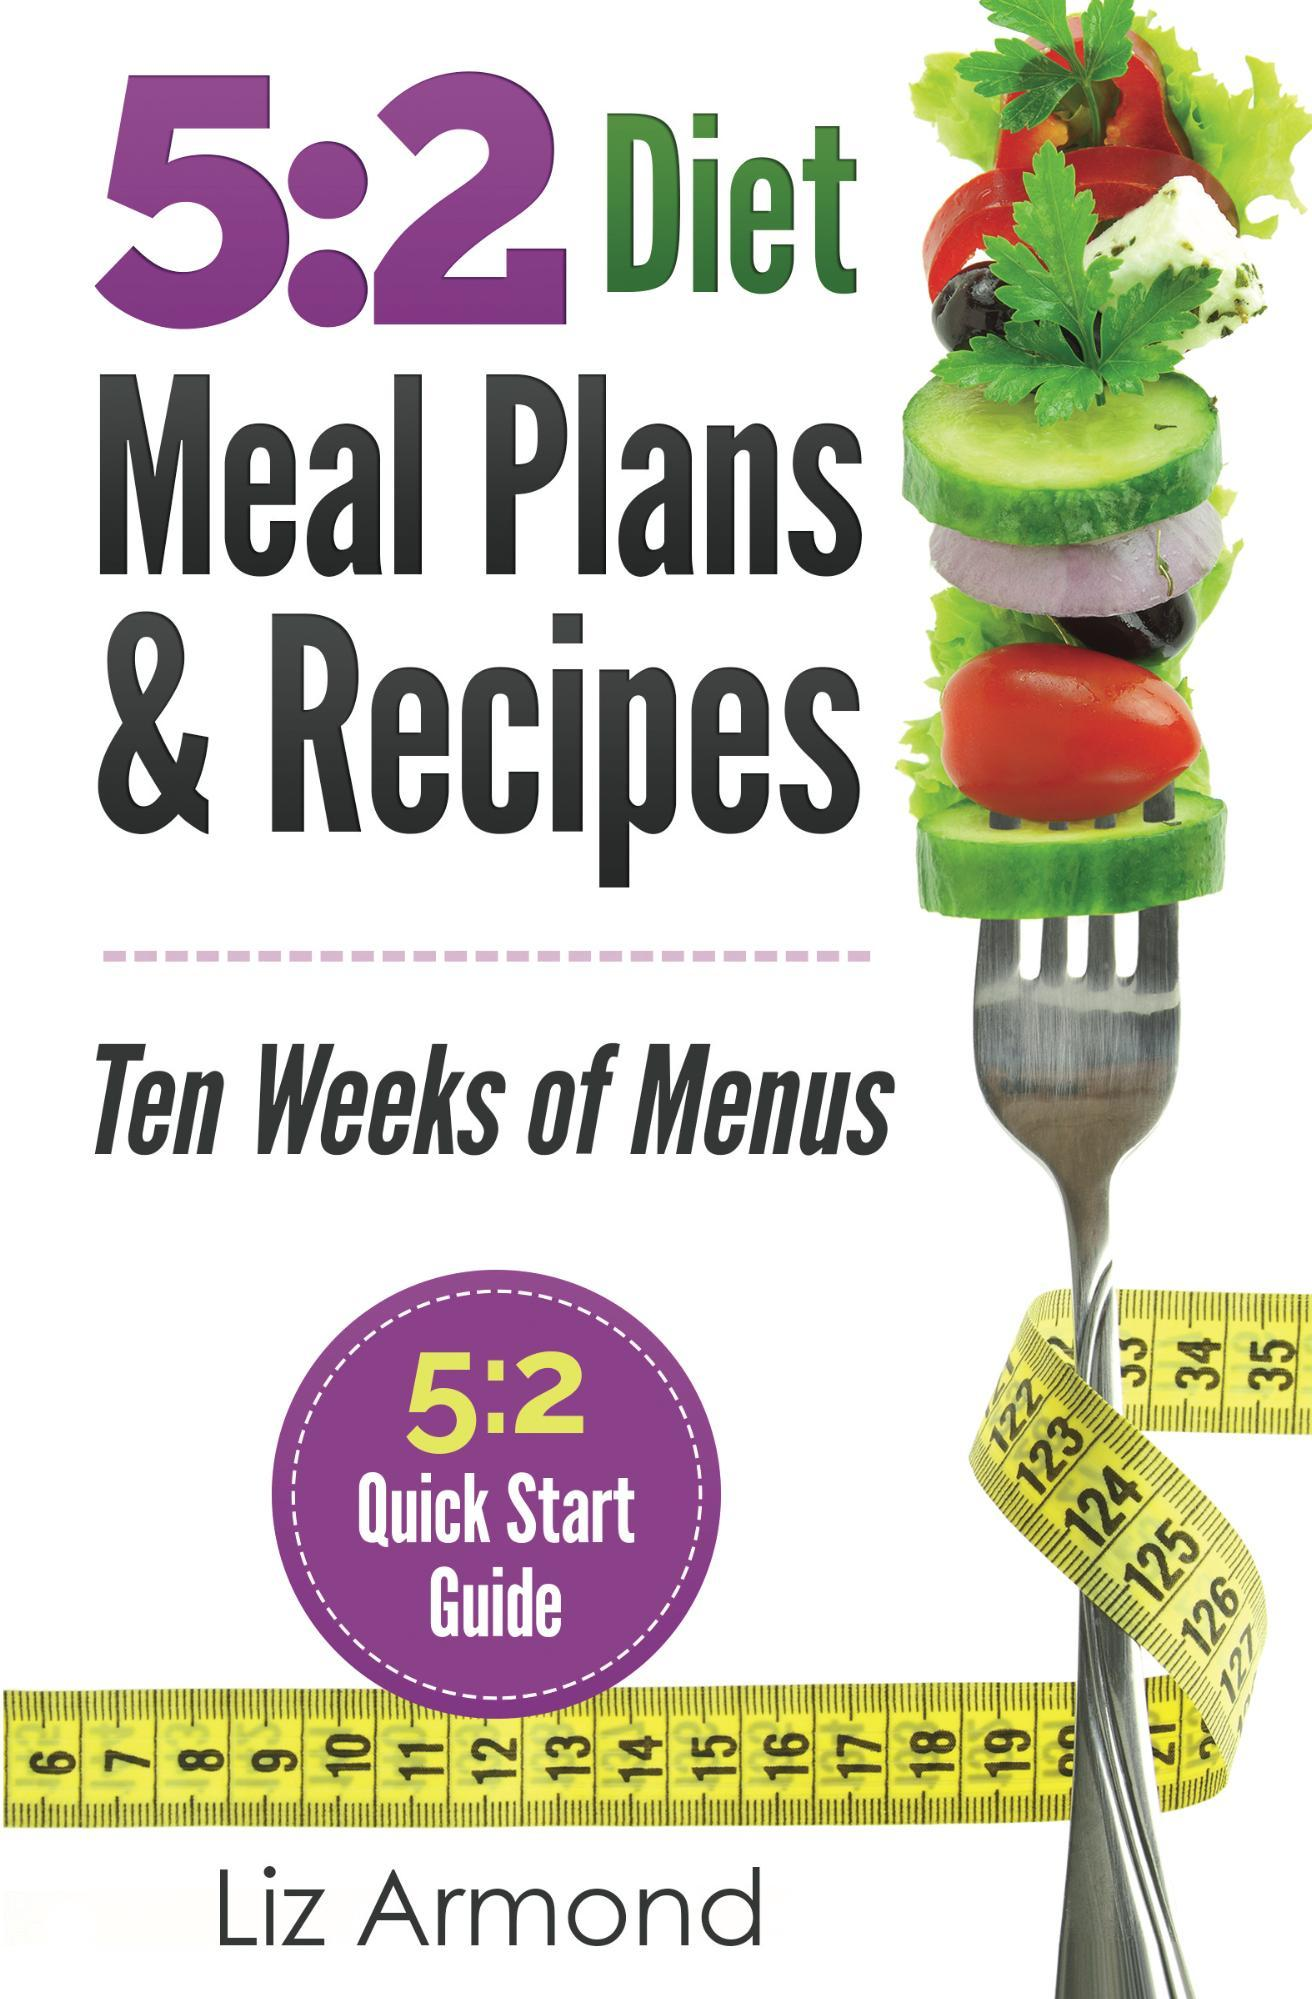 5:2 Diet Meal Plans & Recipes